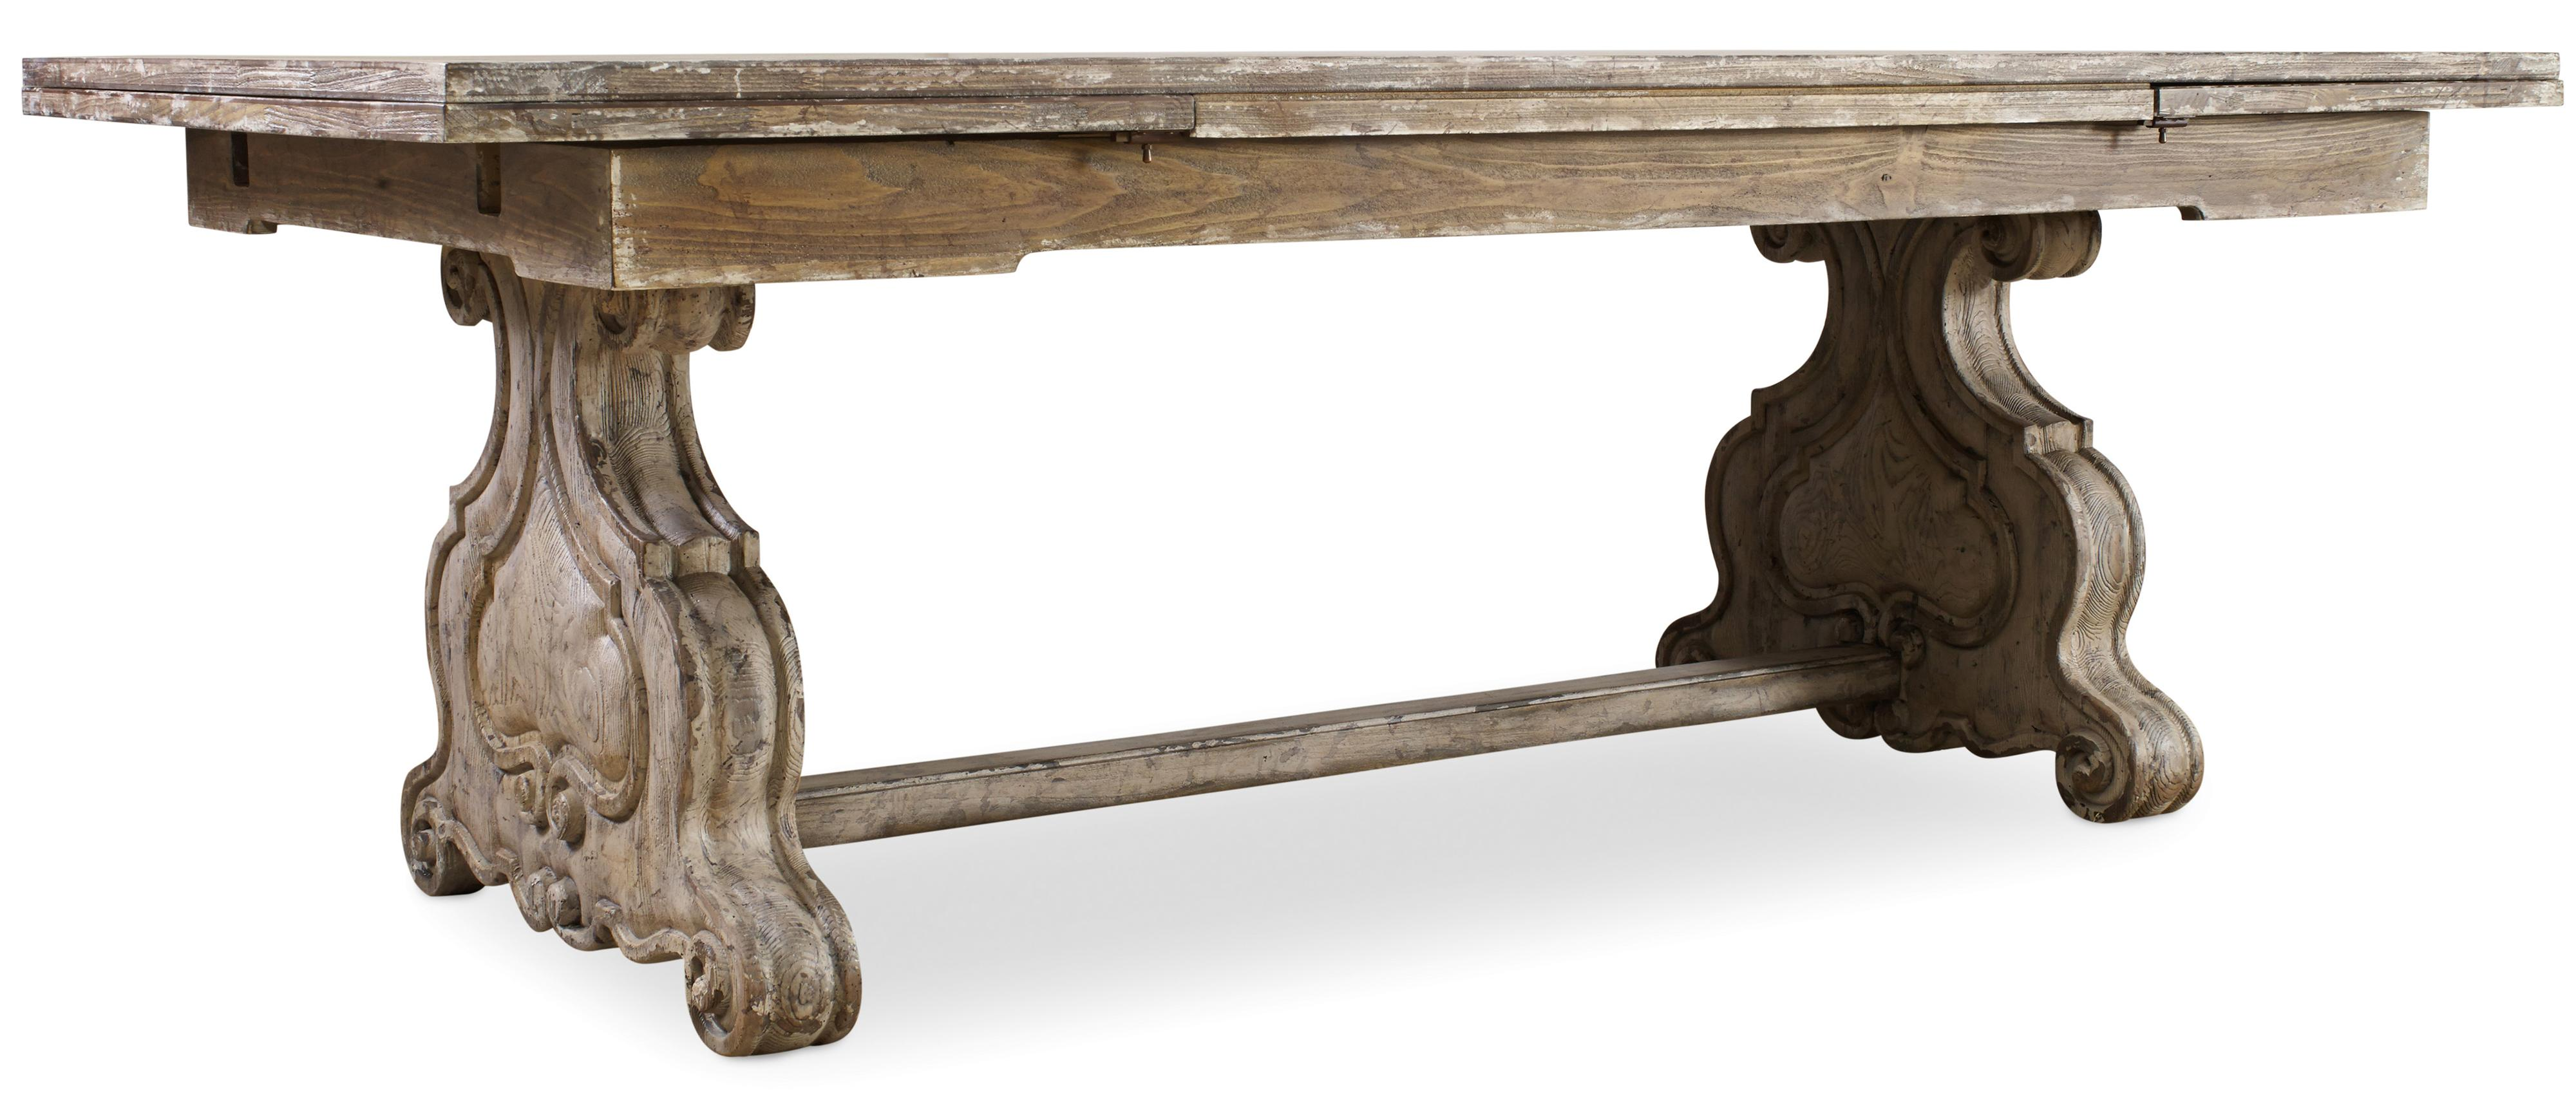 Hooker Furniture Chatelet Refectory Rectangle Trestle Dining Table - Item Number: 5350-75206